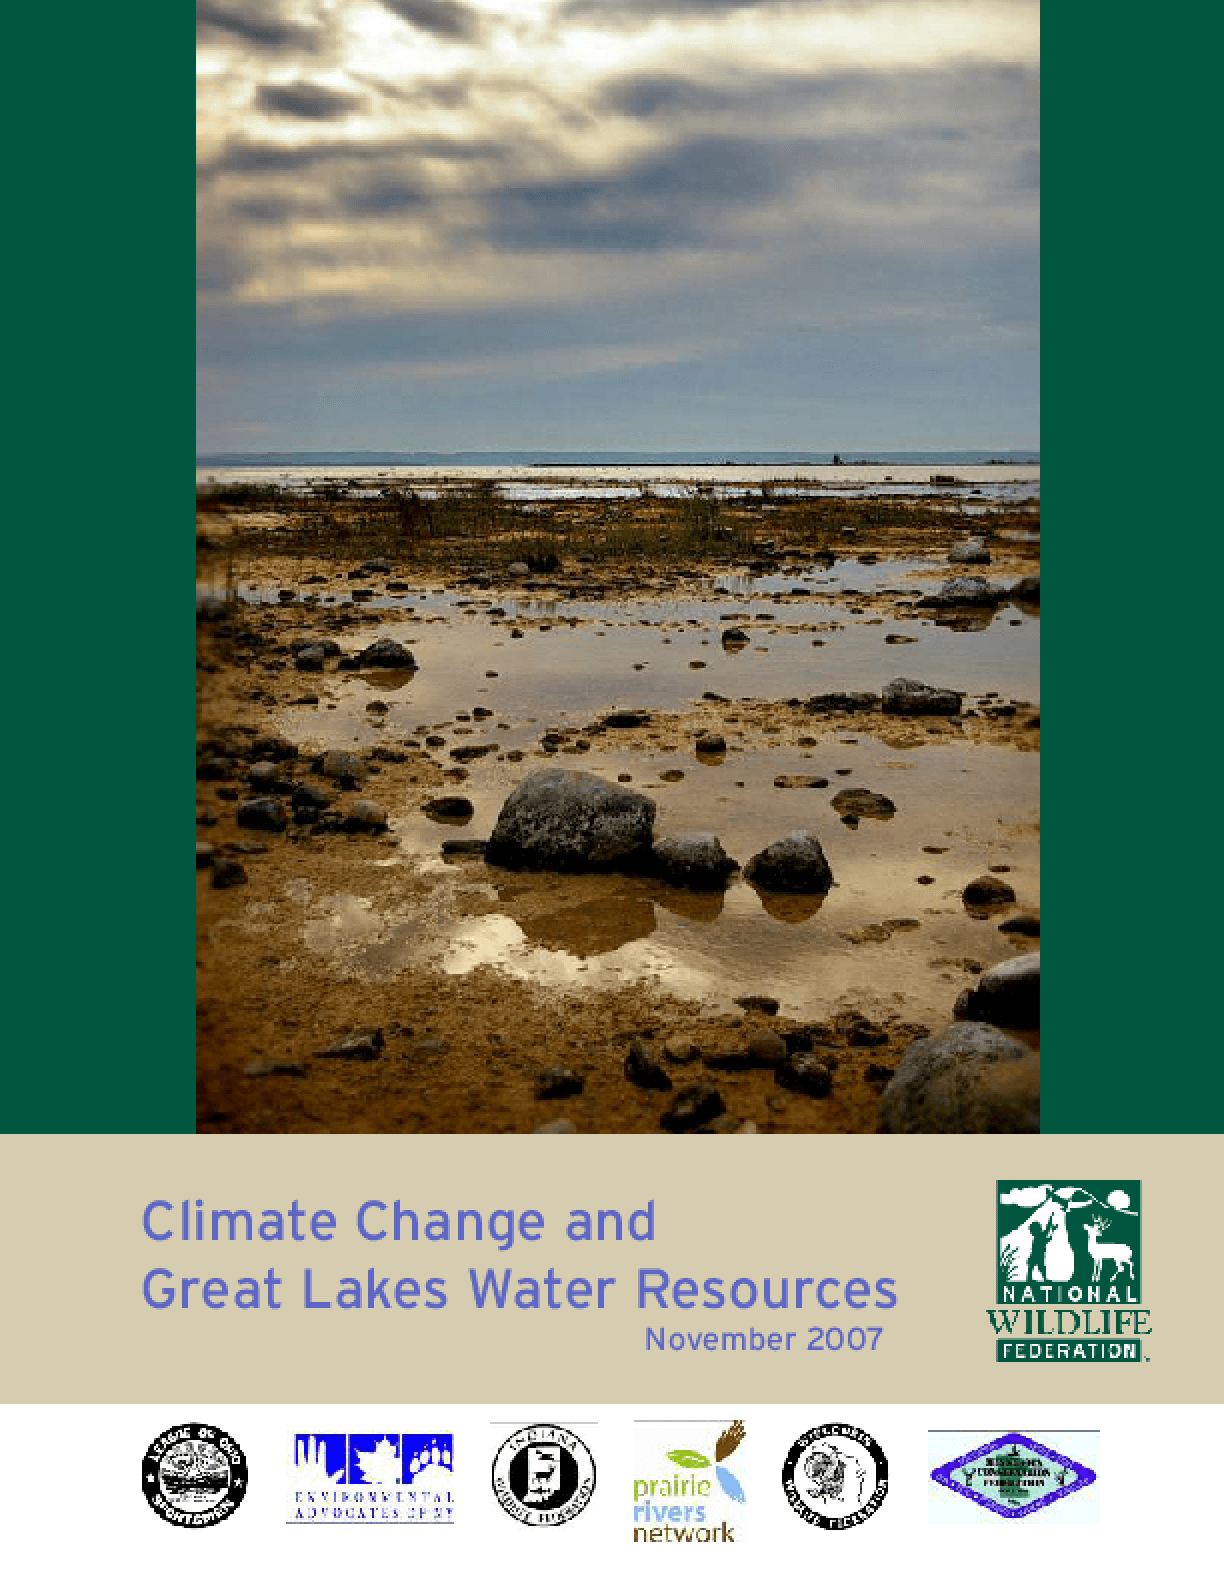 Climate Change and Great Lakes Water Resources